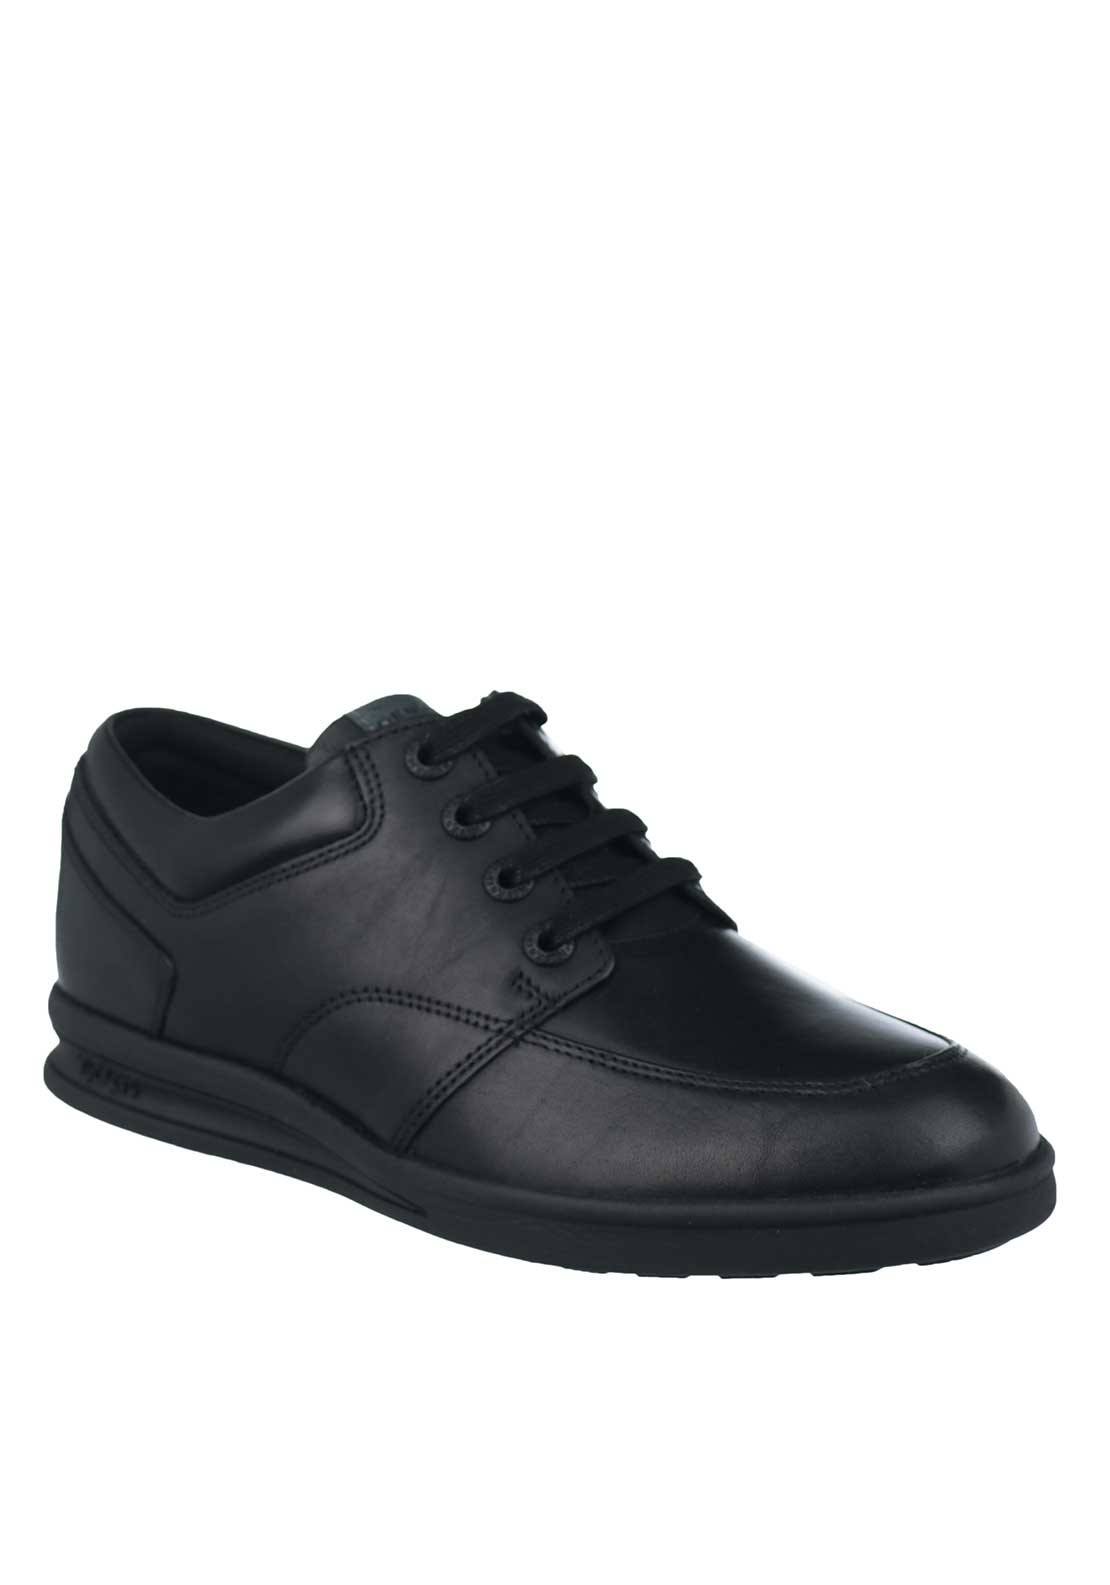 Kickers Boys Leather Lace School Shoes, Black